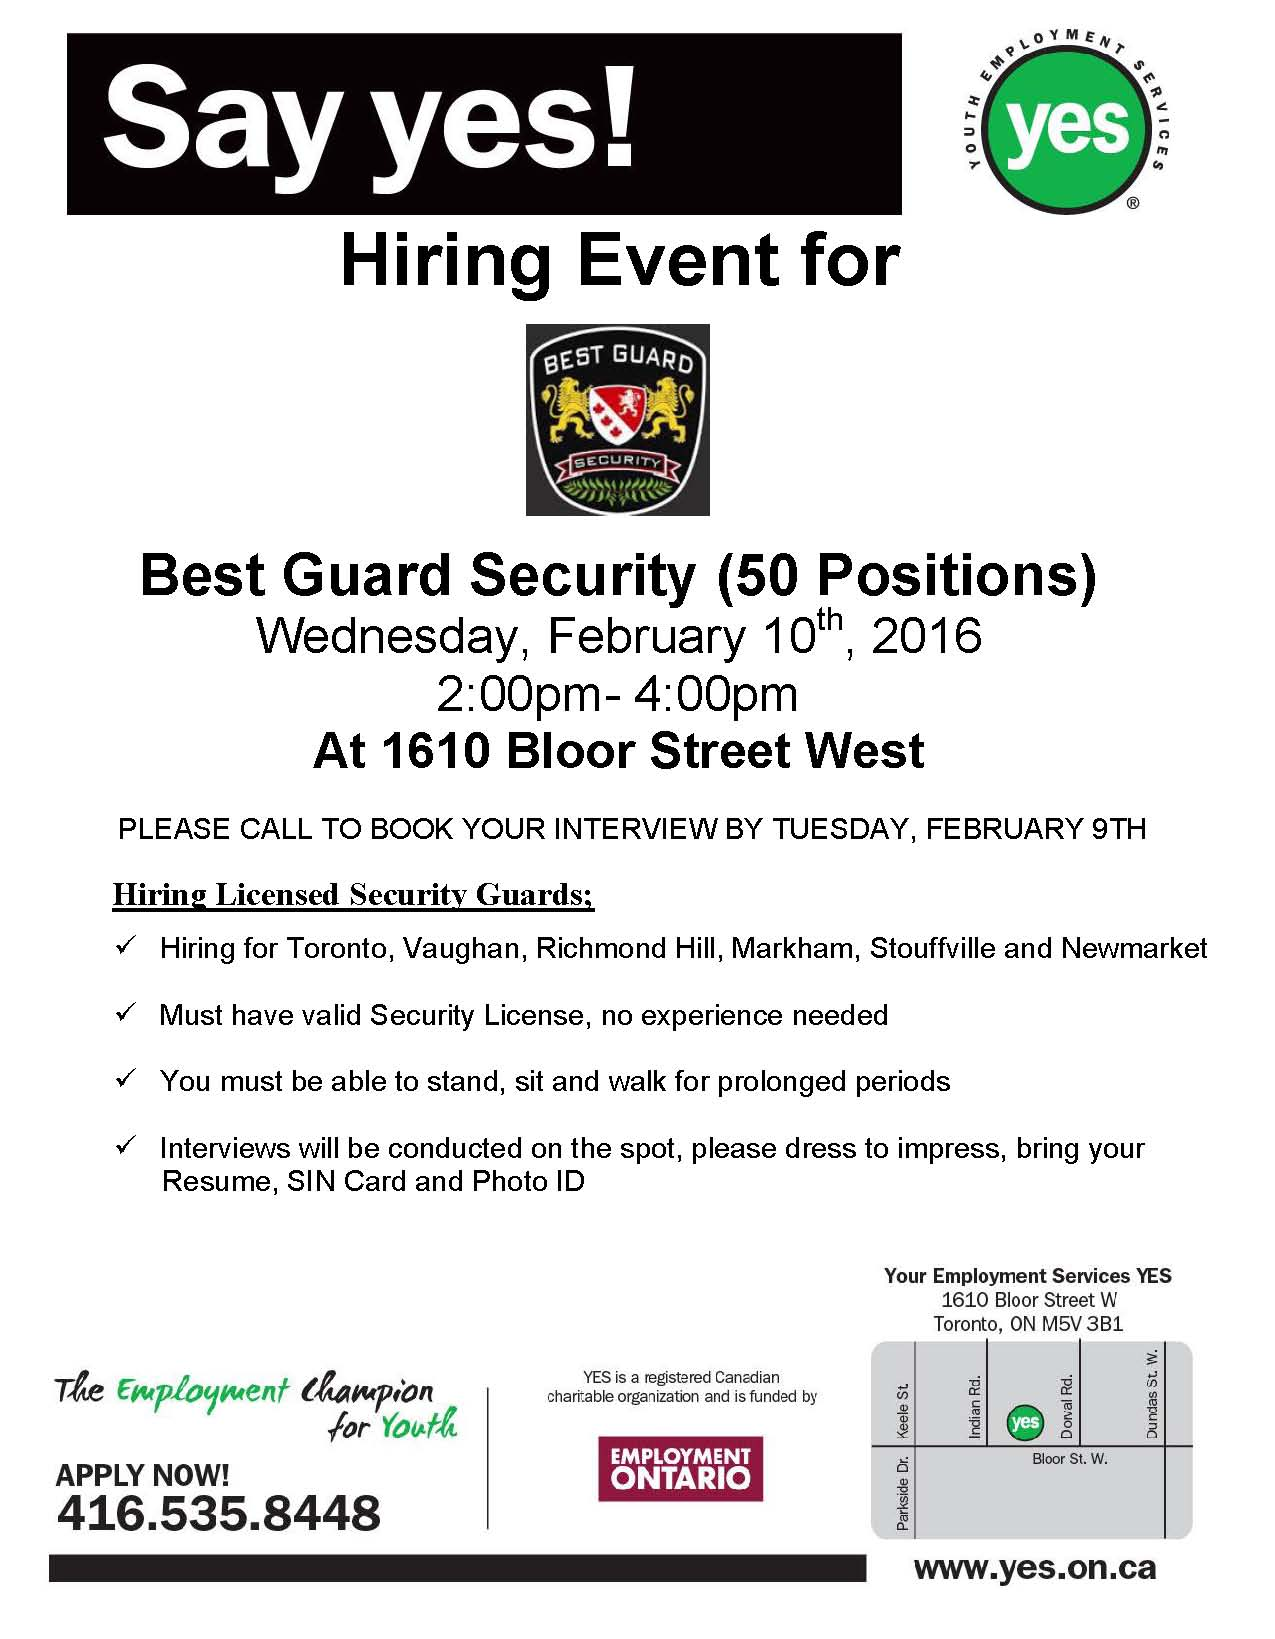 news events youth employment services yes page 5 yes jobfair 1610 flyer bestguardsecurity